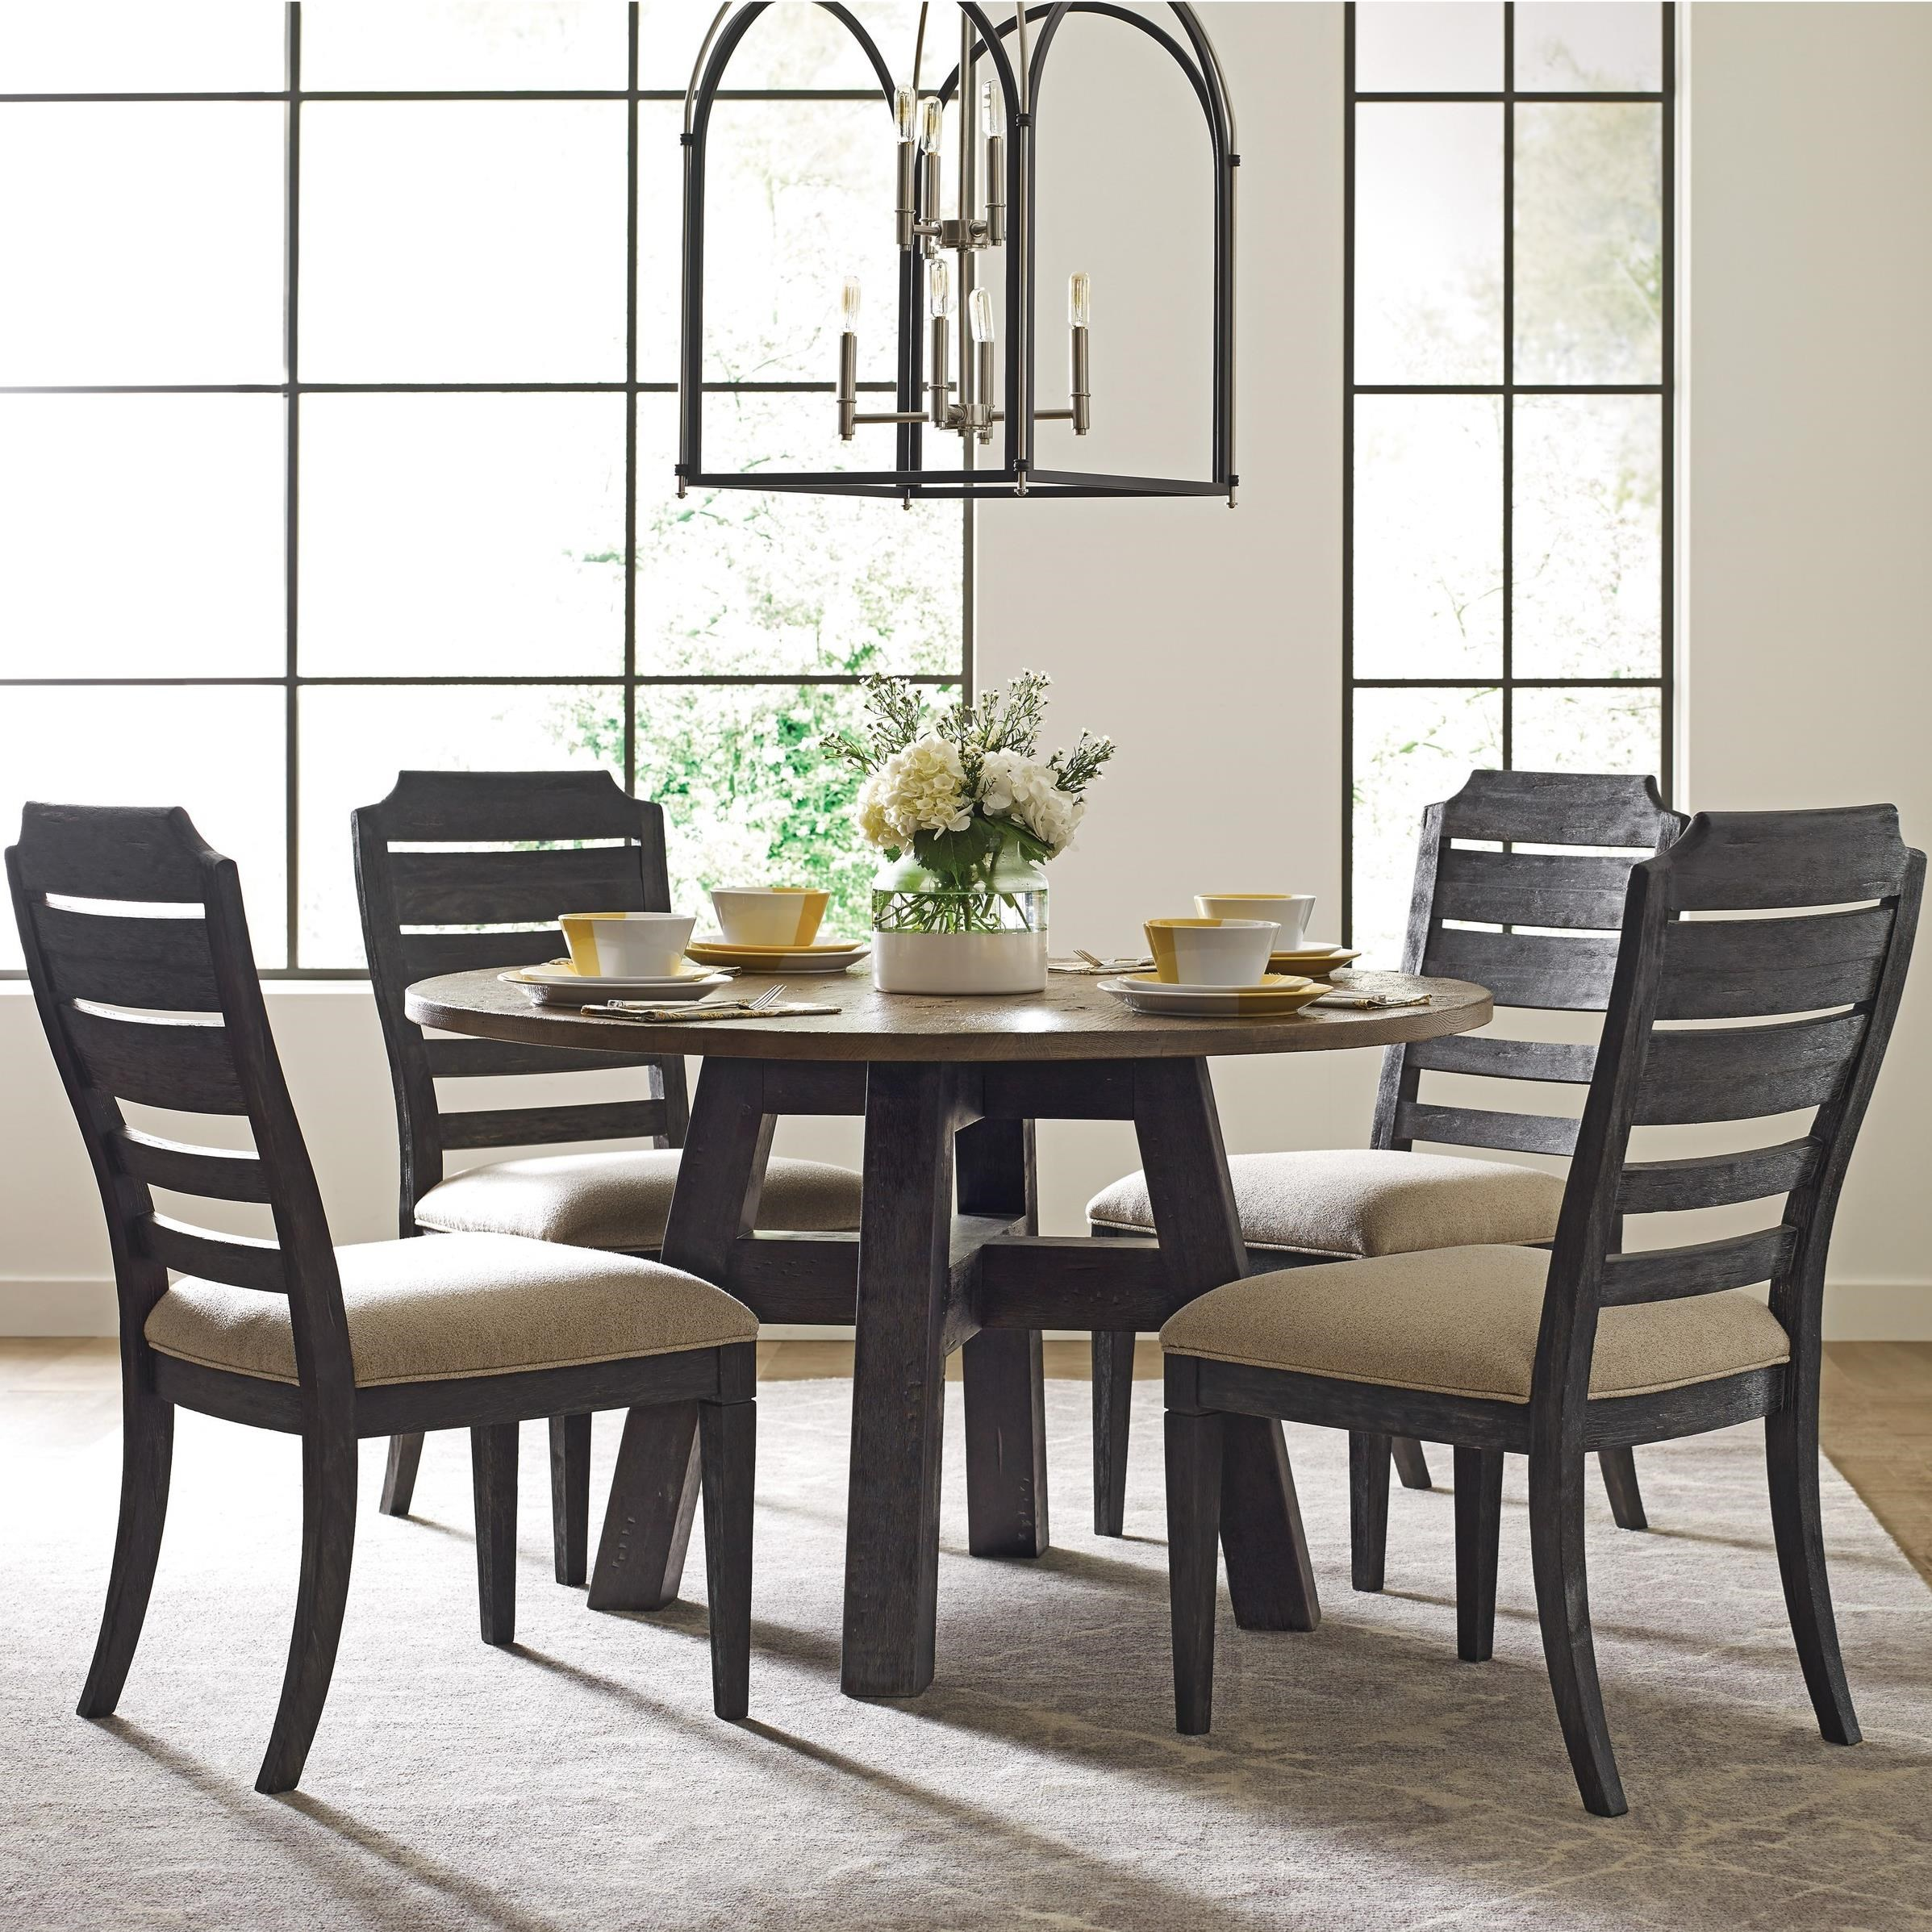 Trails Five Piece Dining Set by Kincaid Furniture at Johnny Janosik